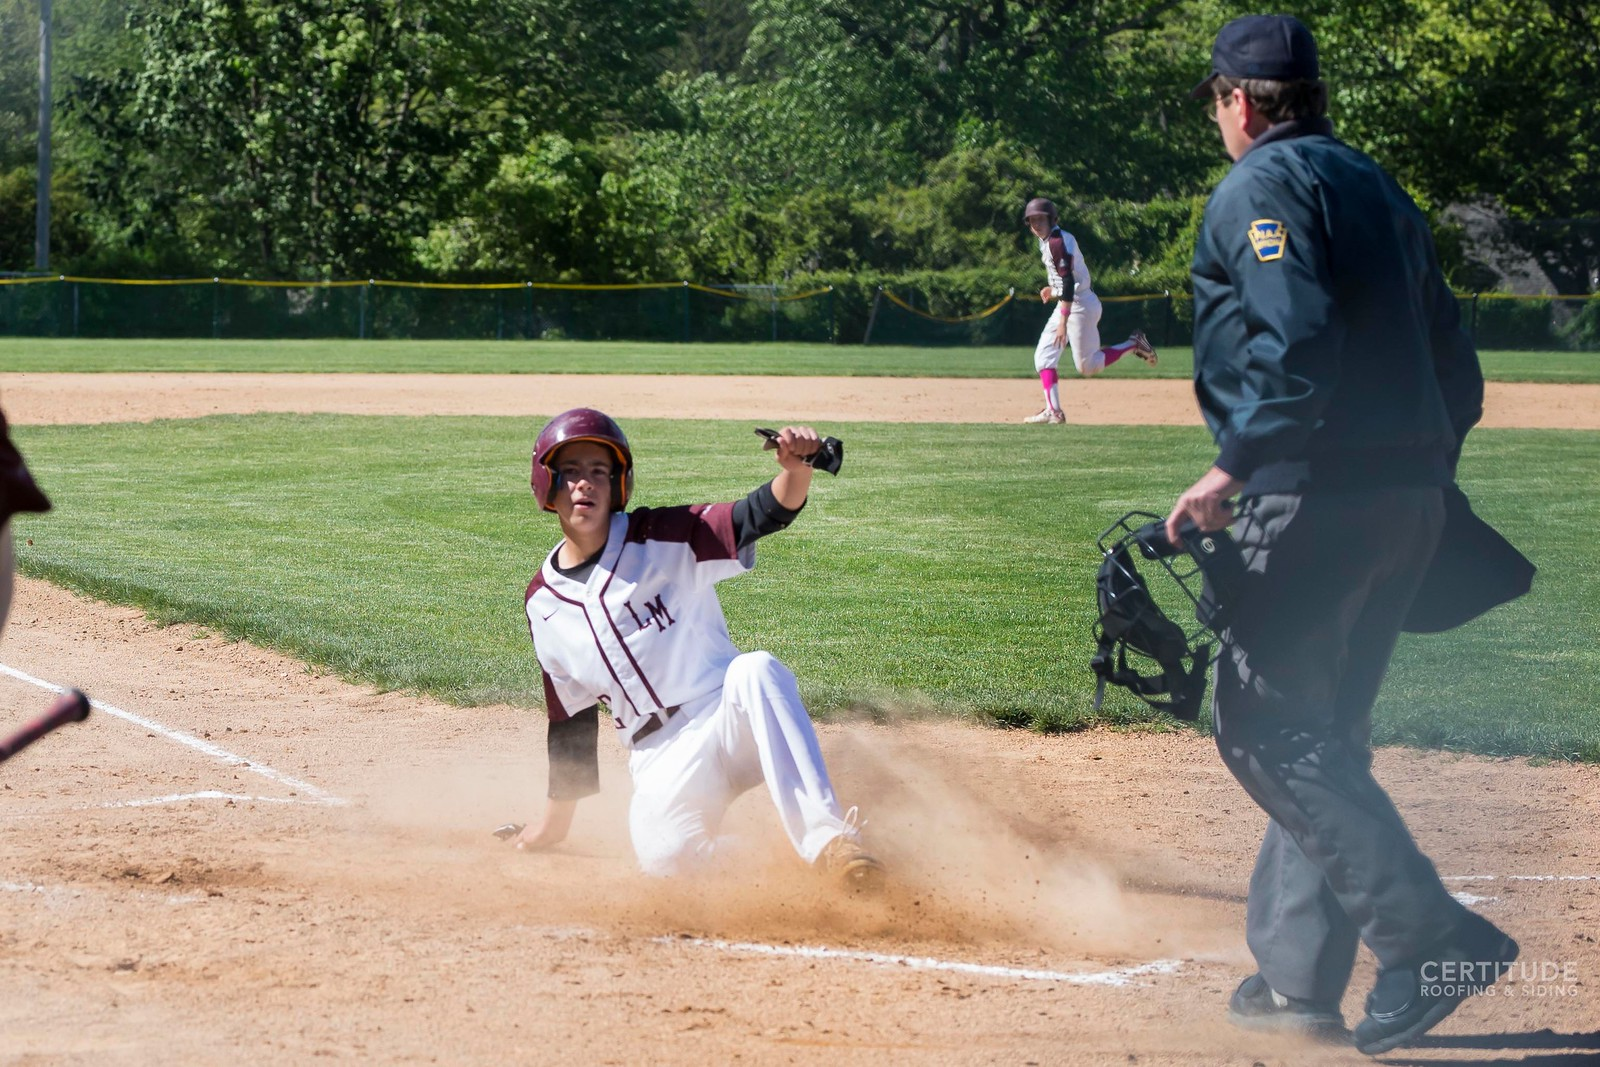 Lower_Merion_BASEBALL_vs_Conestoga-48